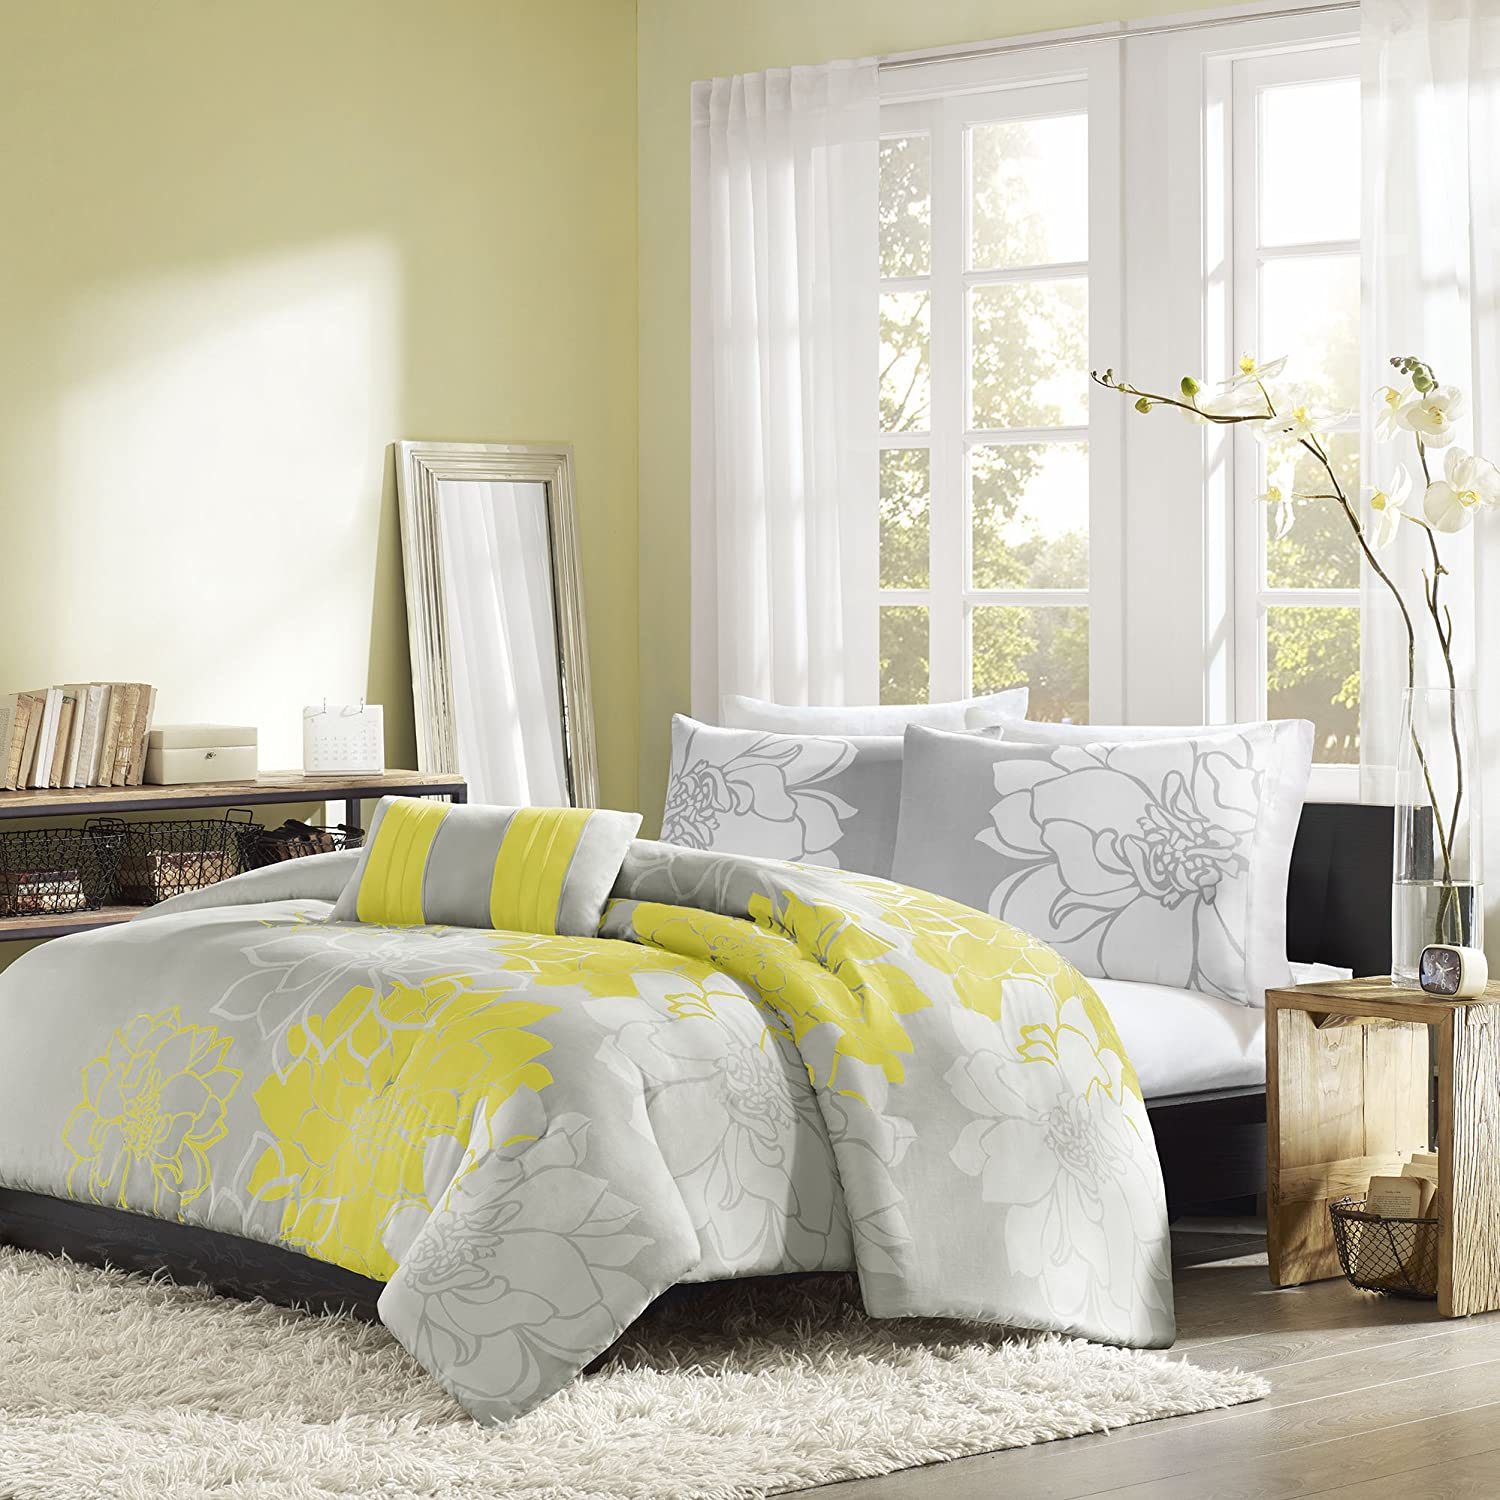 Yellow And Grey Bedding Fel7 Com